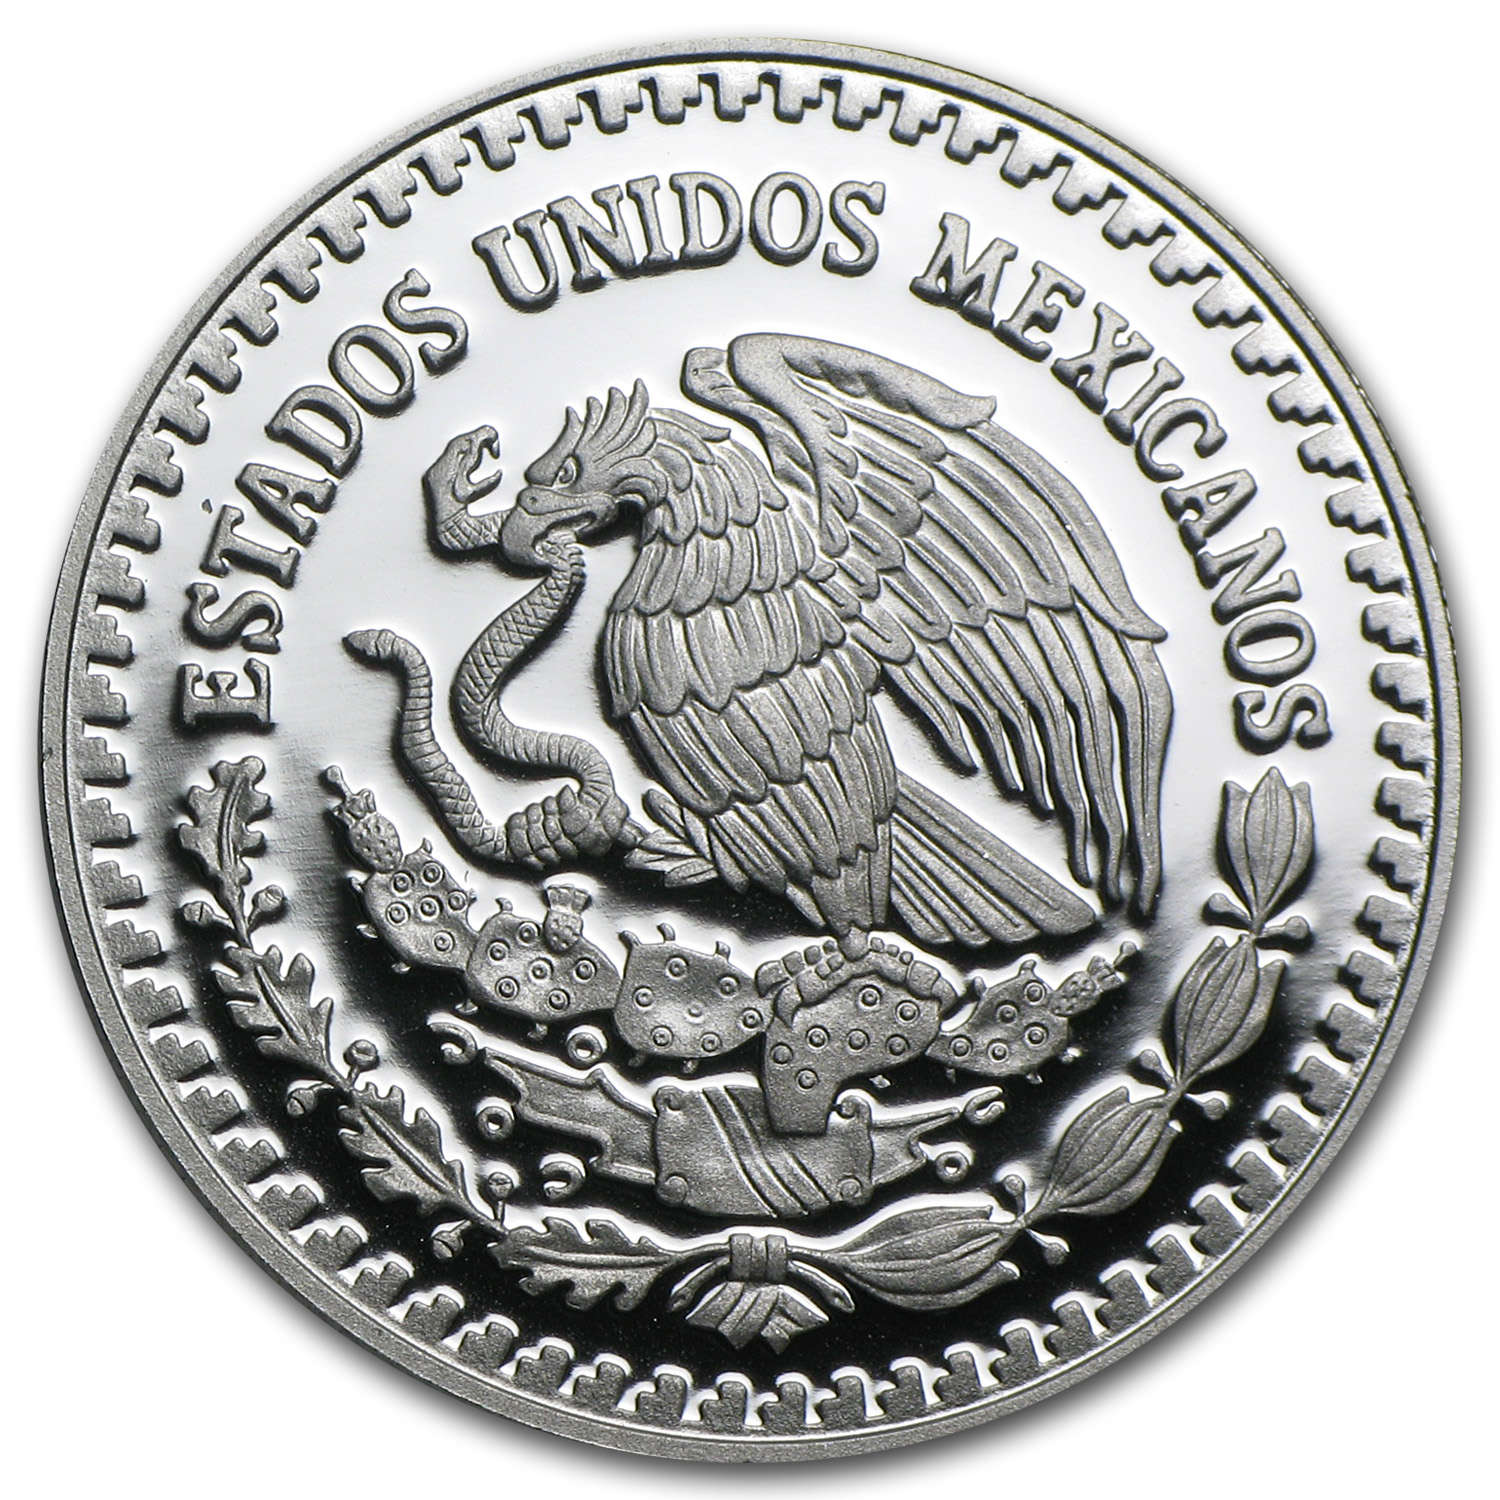 2013 (1/4 oz) Silver Libertad - Proof (In Capsule)